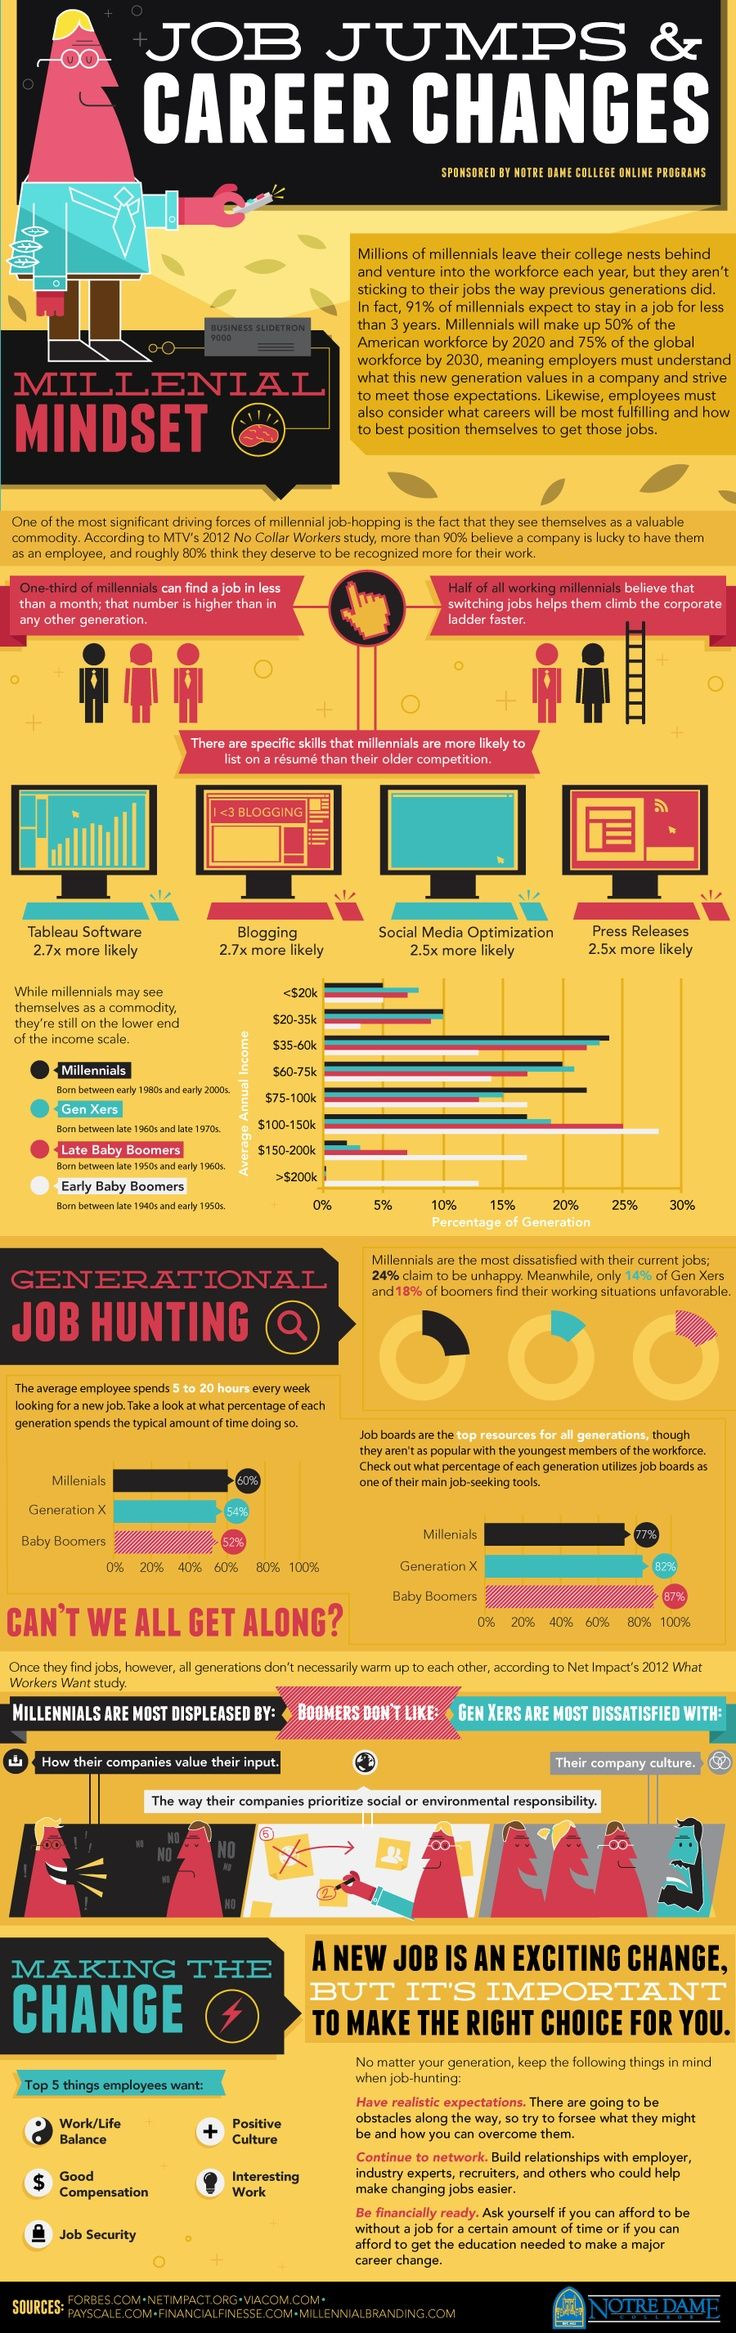 Job Jumps and Career Changes: The Millennial Mindset [Infographic]